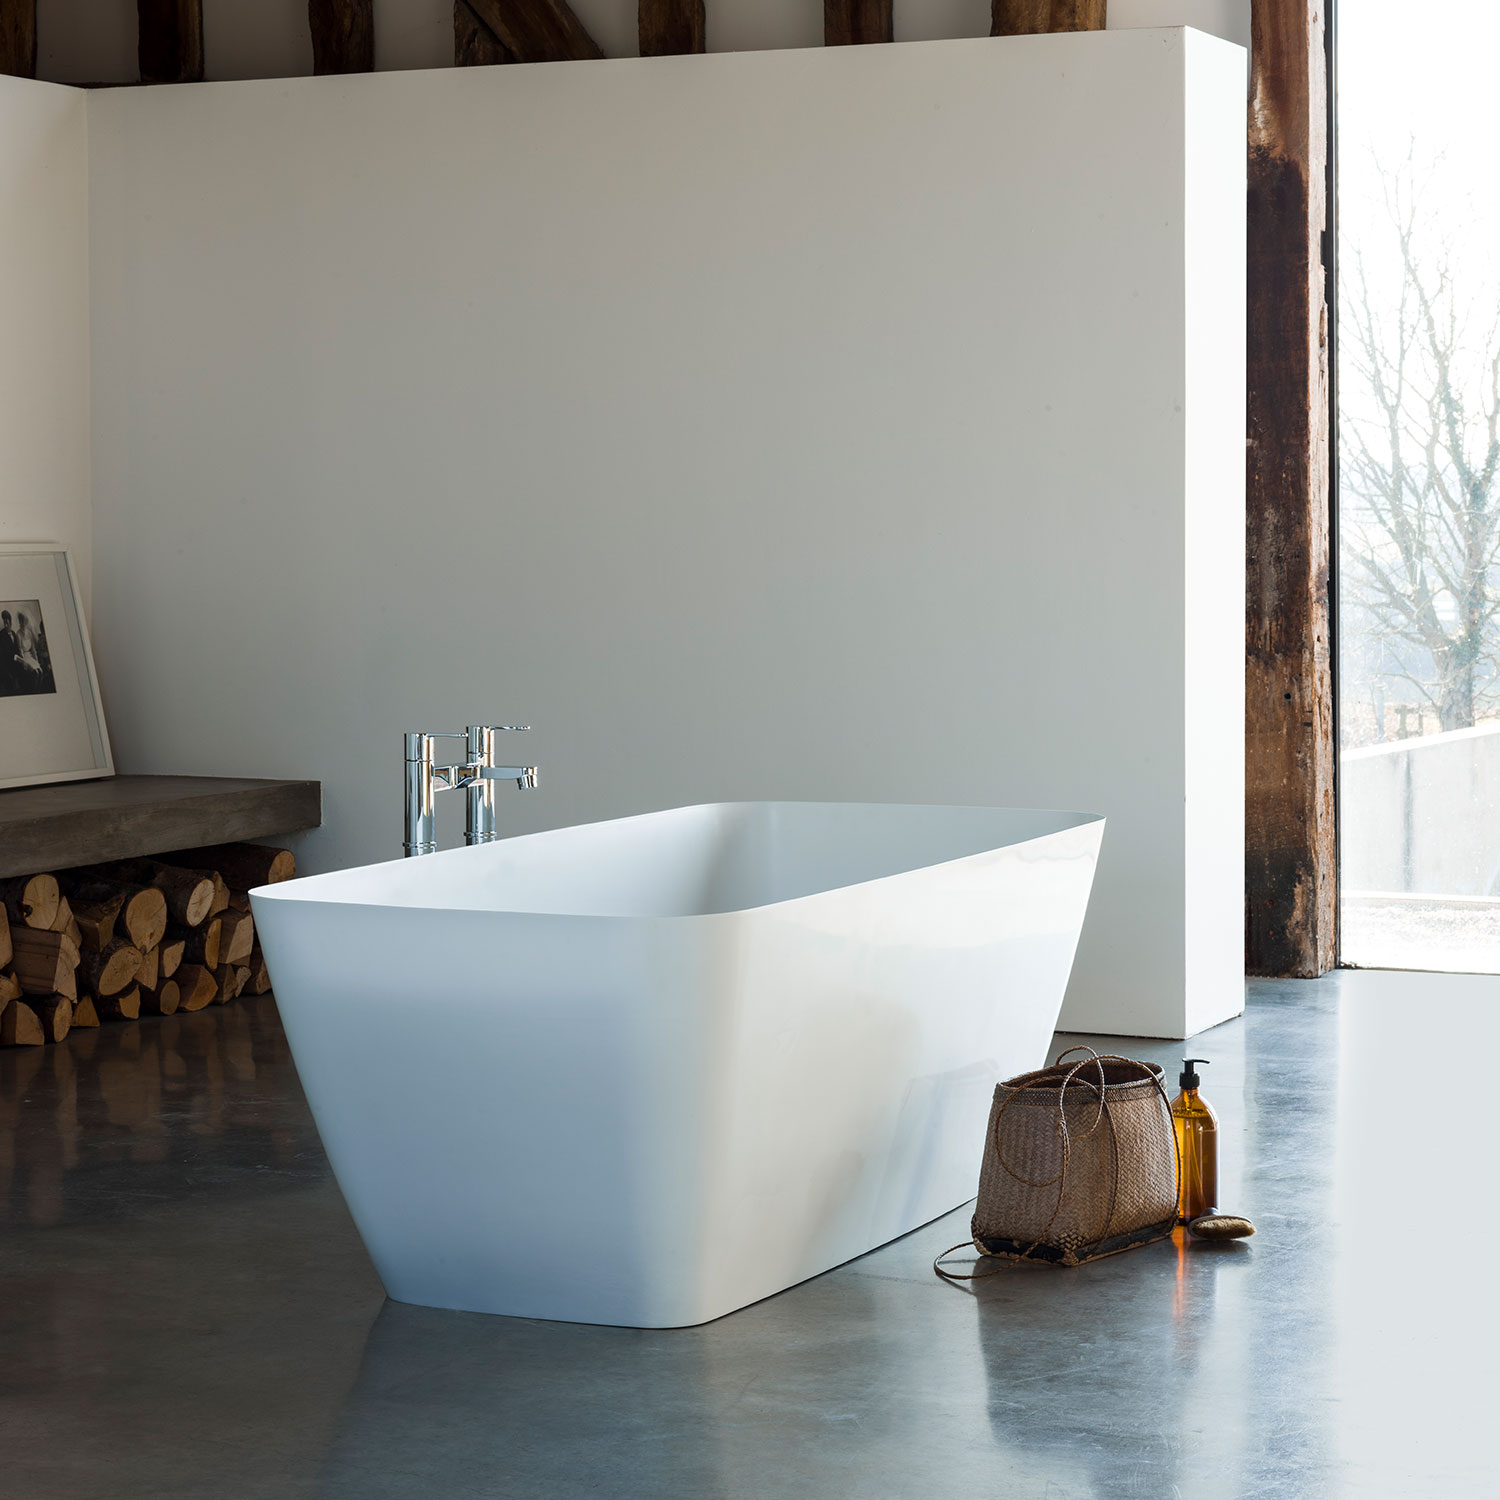 Clearwater Vicenza Petite Freestanding Bath 1524mm x 800mm - Clear Stone-0